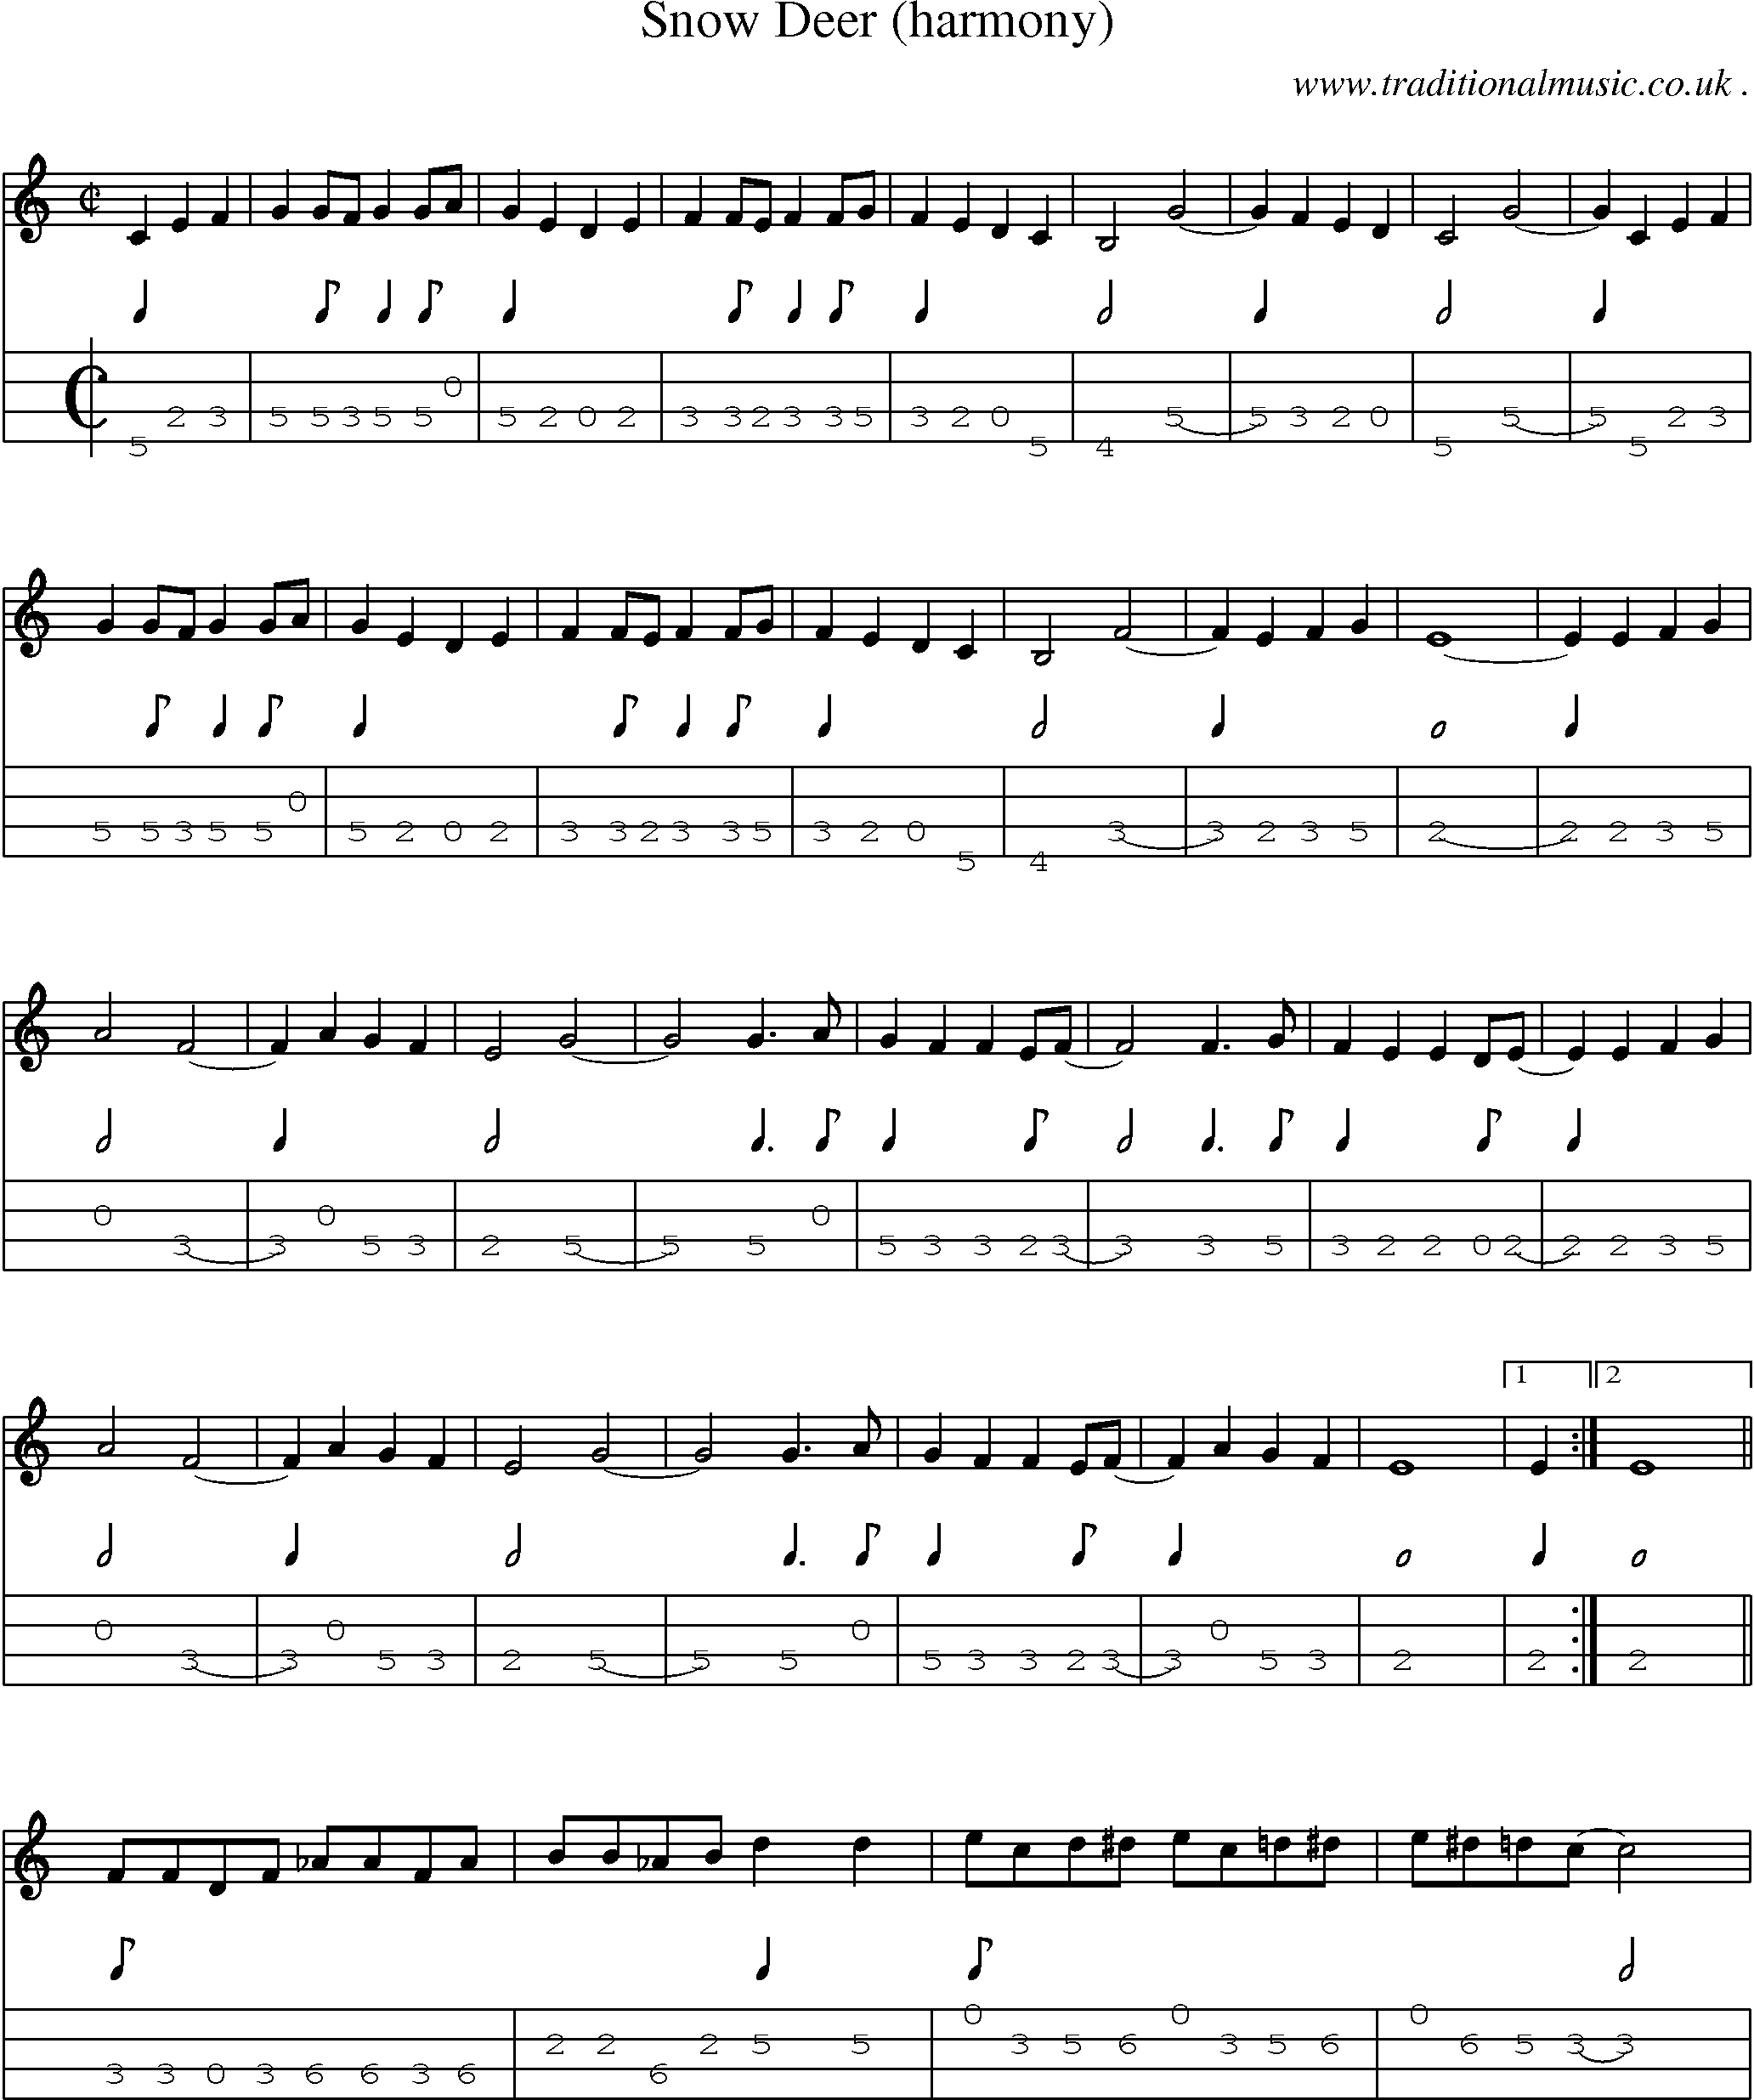 Music Score And Mandolin Tabs For Snow Deer Harmony Sheet Music